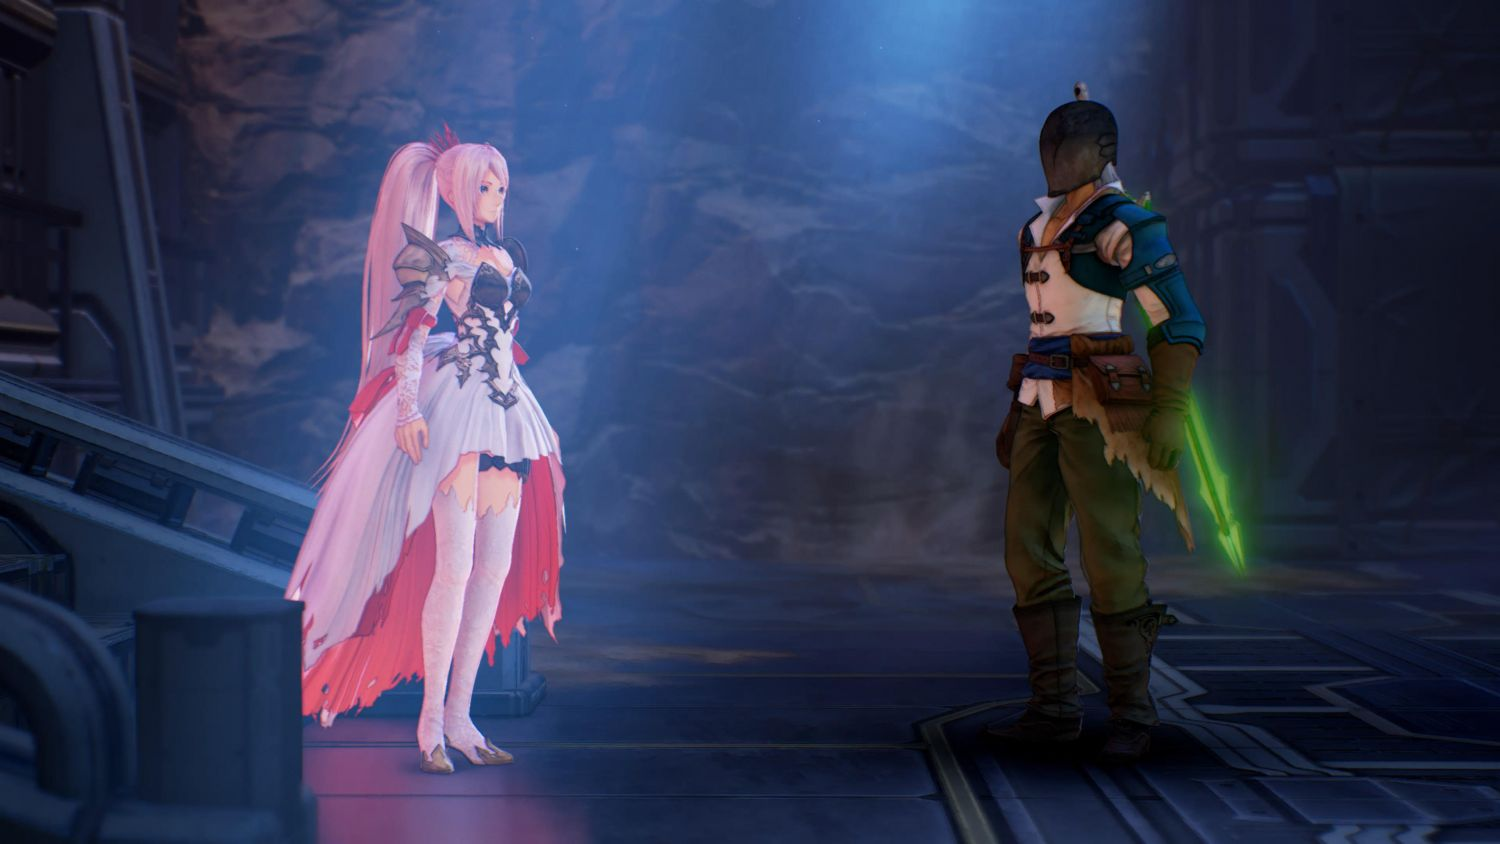 Geek Review: Tales of Arise - Shionne and Alphen